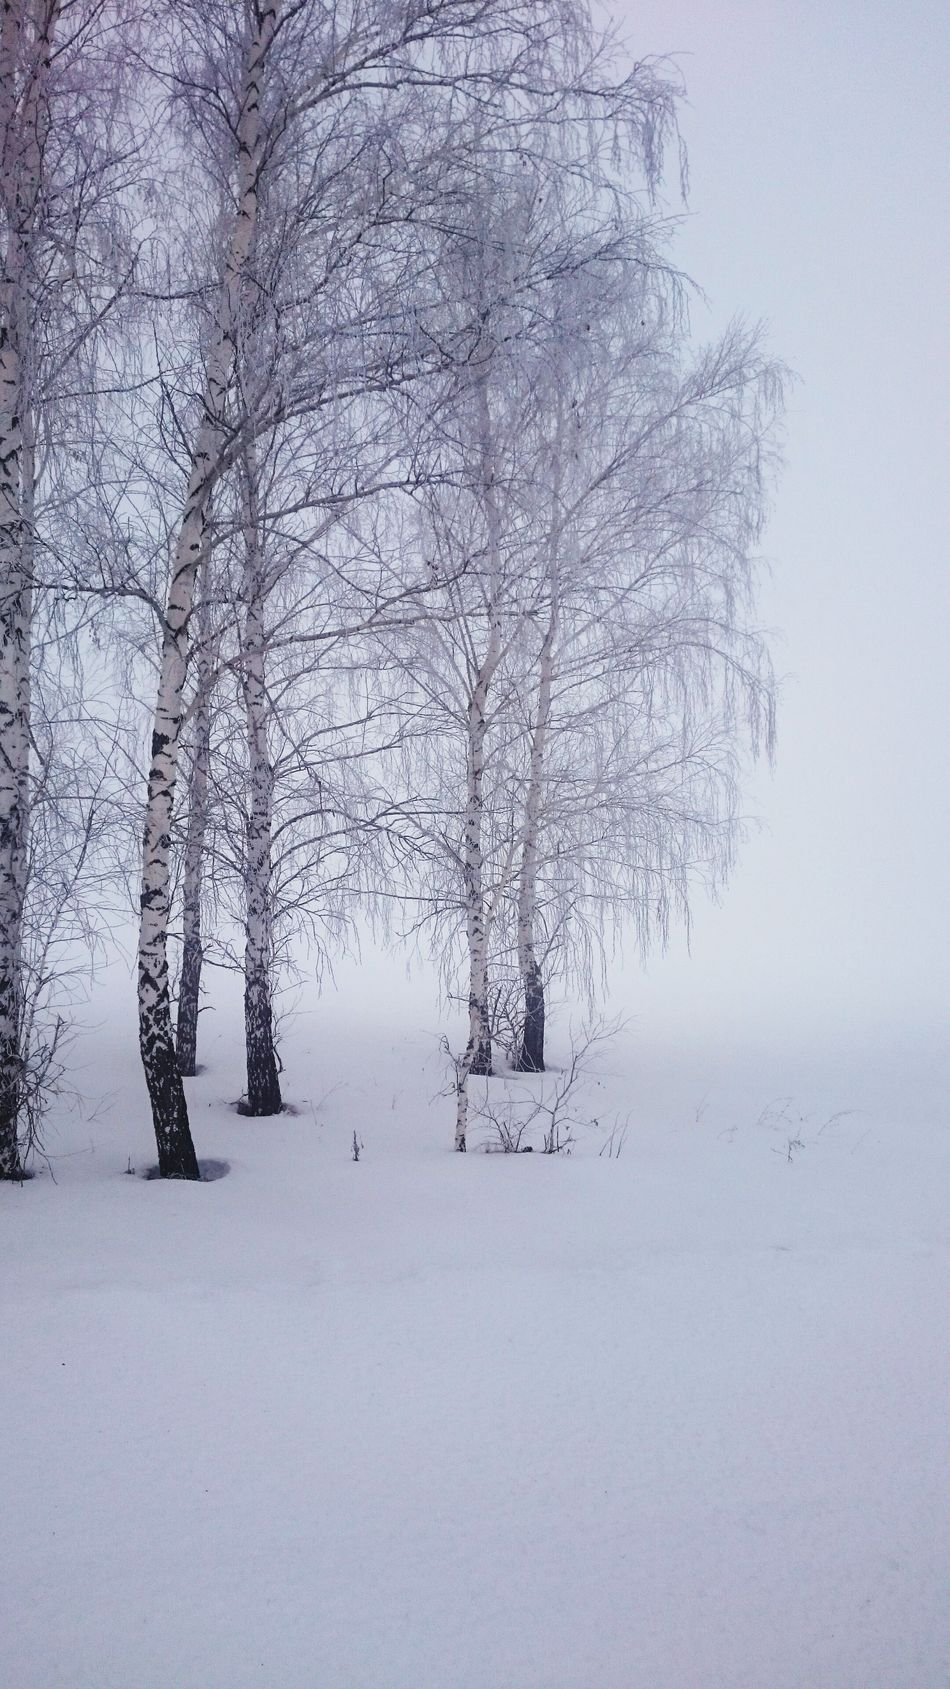 Tree Cold Temperature Snow Nature Winter No People Bare Tree Forest Branch Snowing Beauty In Nature Day Outdoors FromRussiaWithLove лес и природа береза туман зима